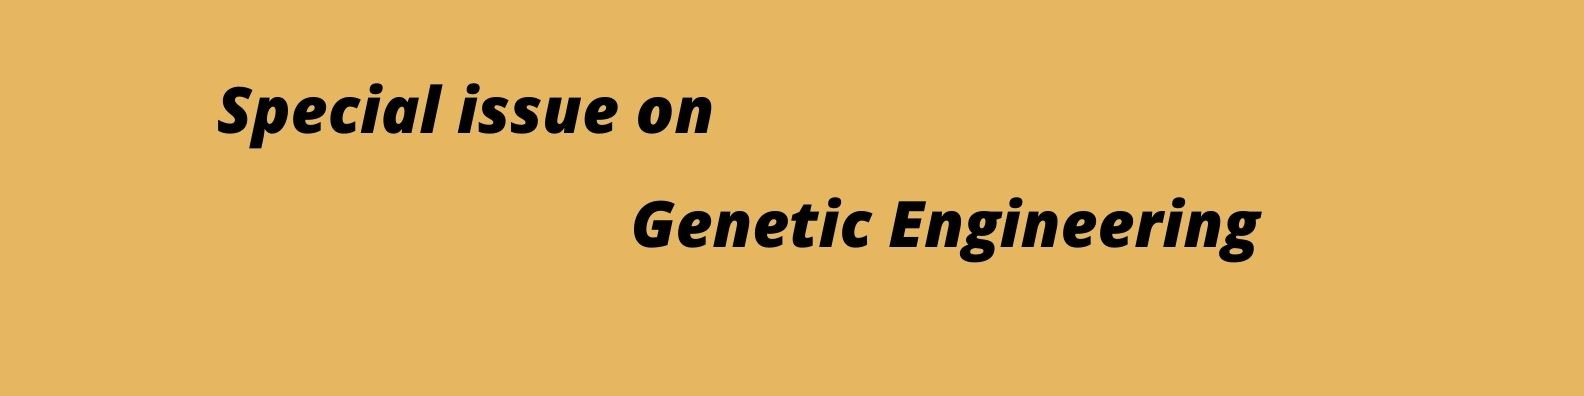 special-issue-on-advancements-in-genetic-engineering-2114.jpg